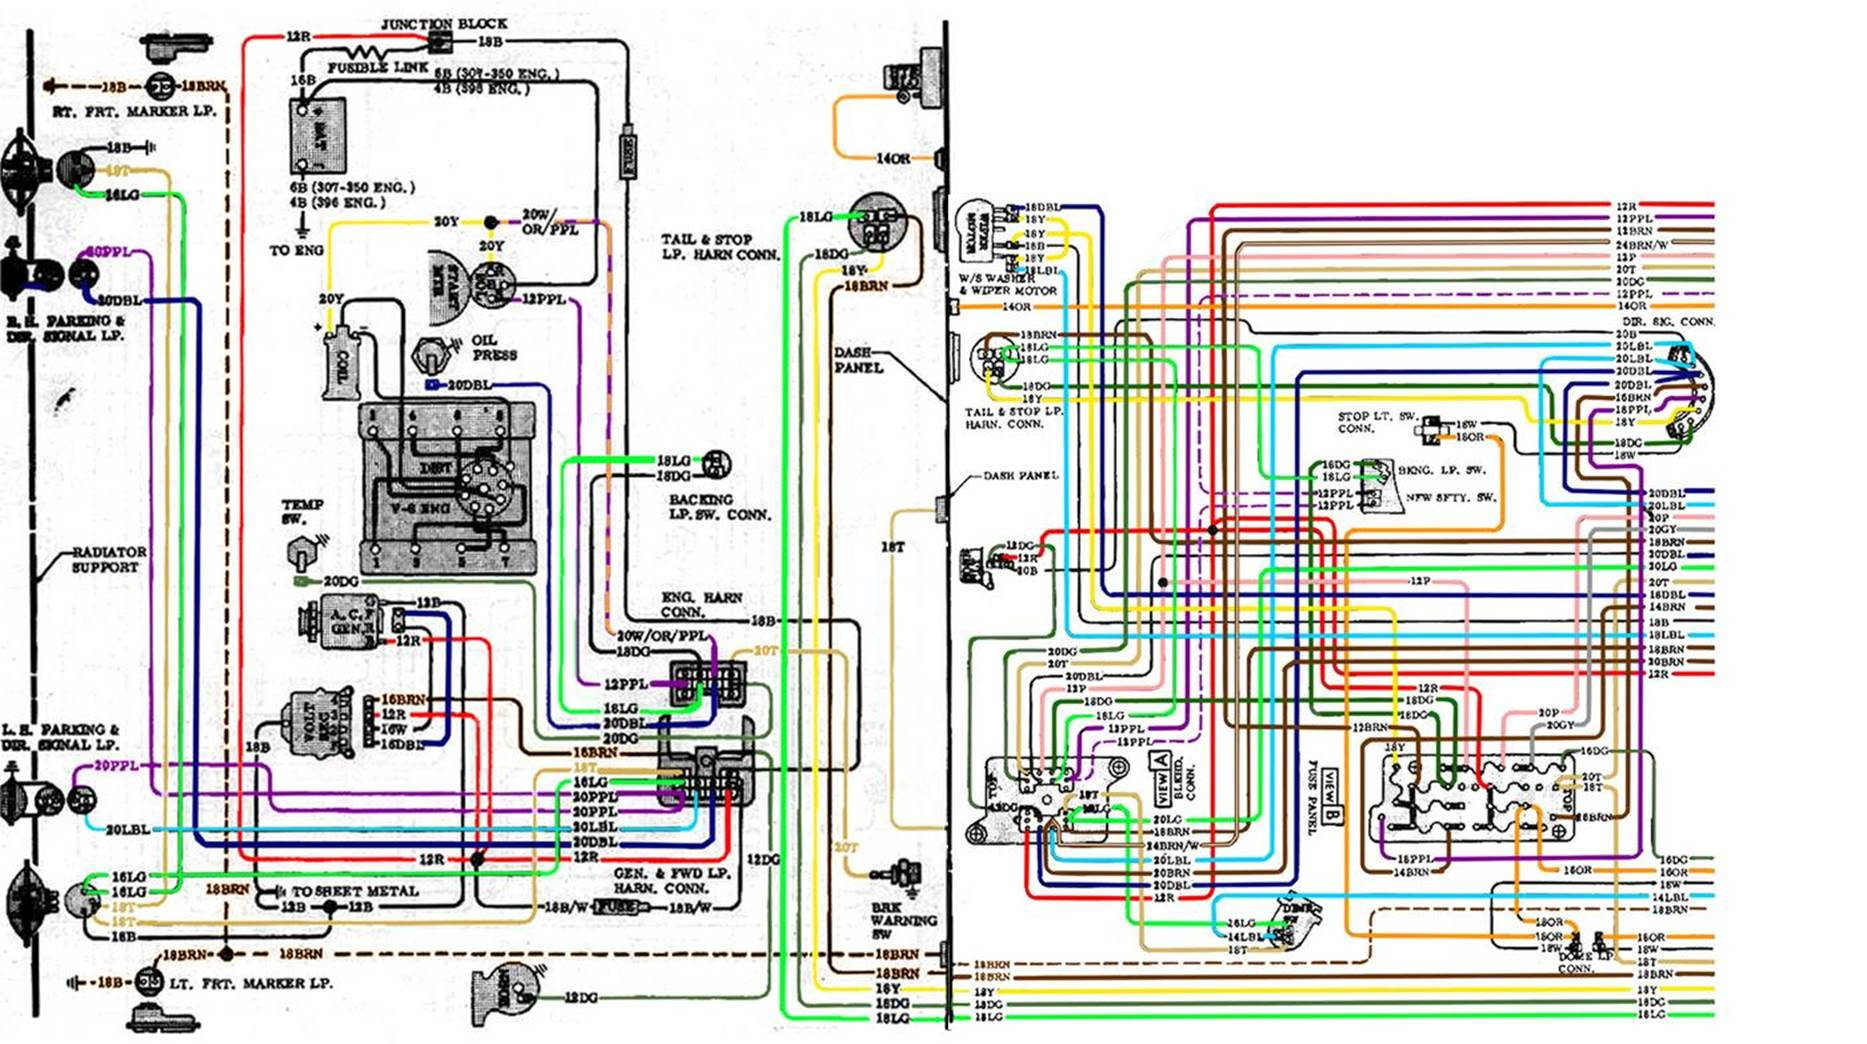 image002 gm wiring diagrams 2003 chevy 3500 abs wiring diagrams \u2022 wiring El Camino Girls at bayanpartner.co